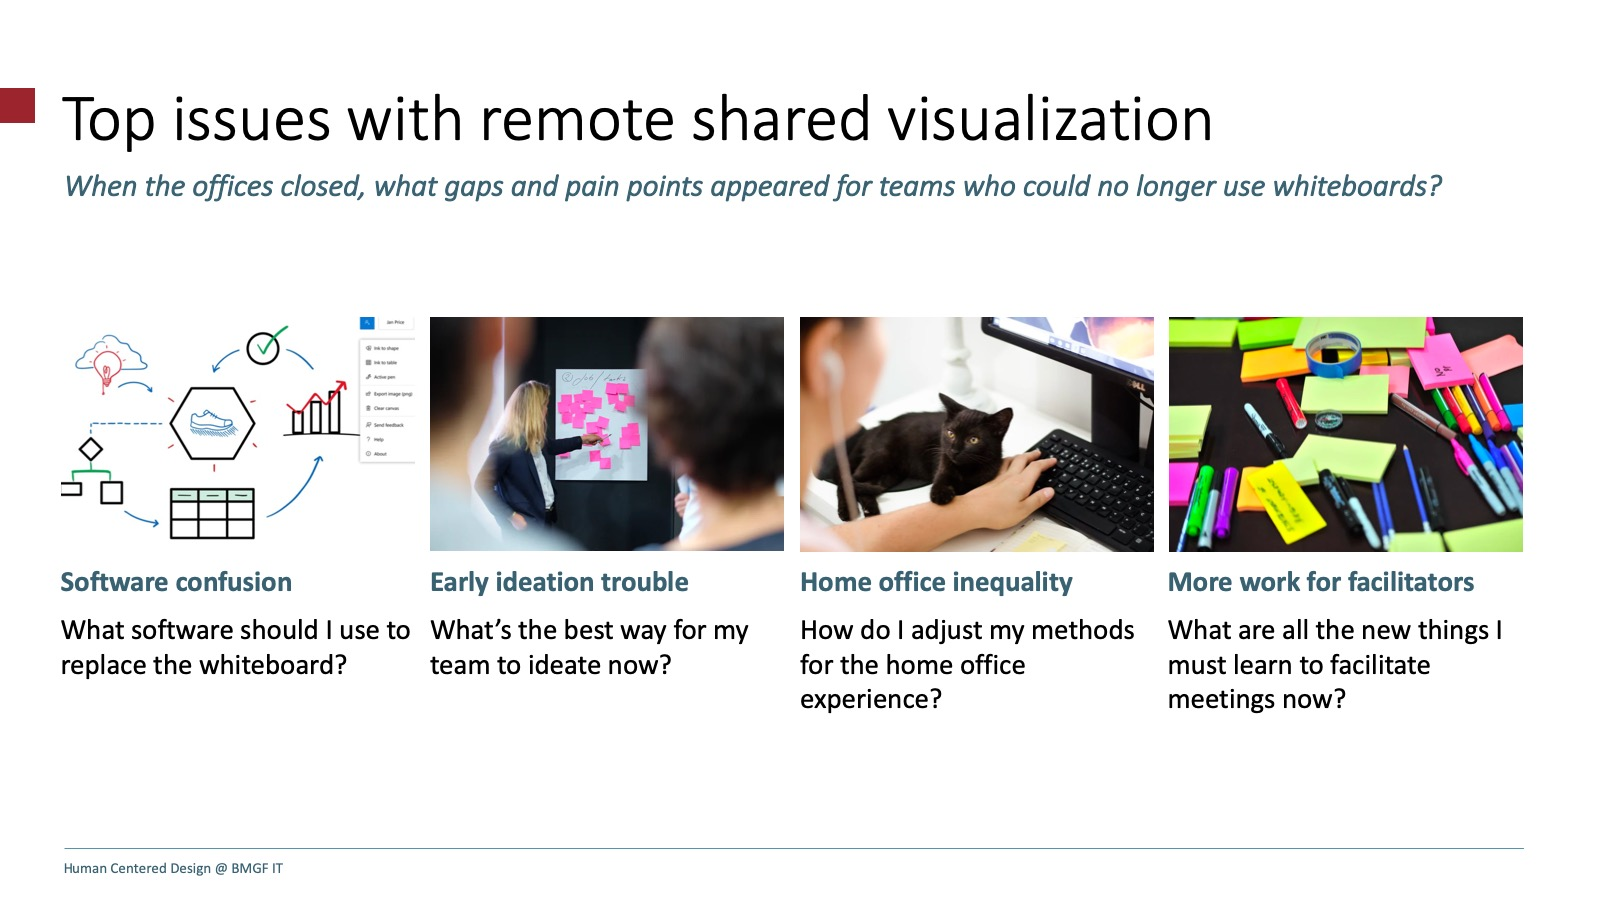 Top issues with remote shared visualization